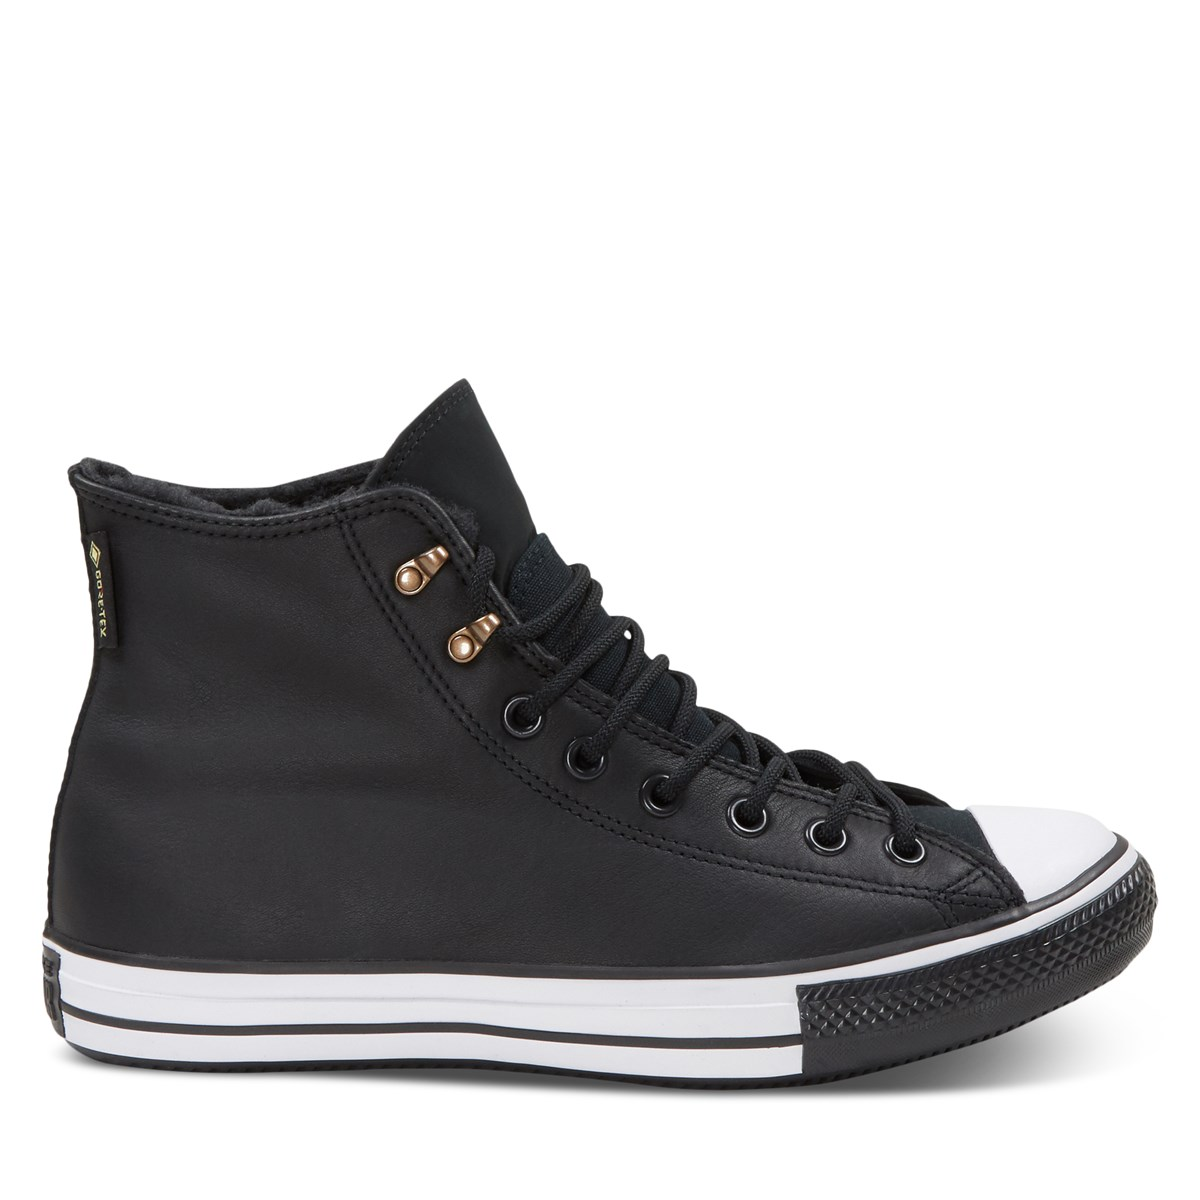 Men's Chuck Taylor All Star Winter GORE-TEX Sneakers in Black